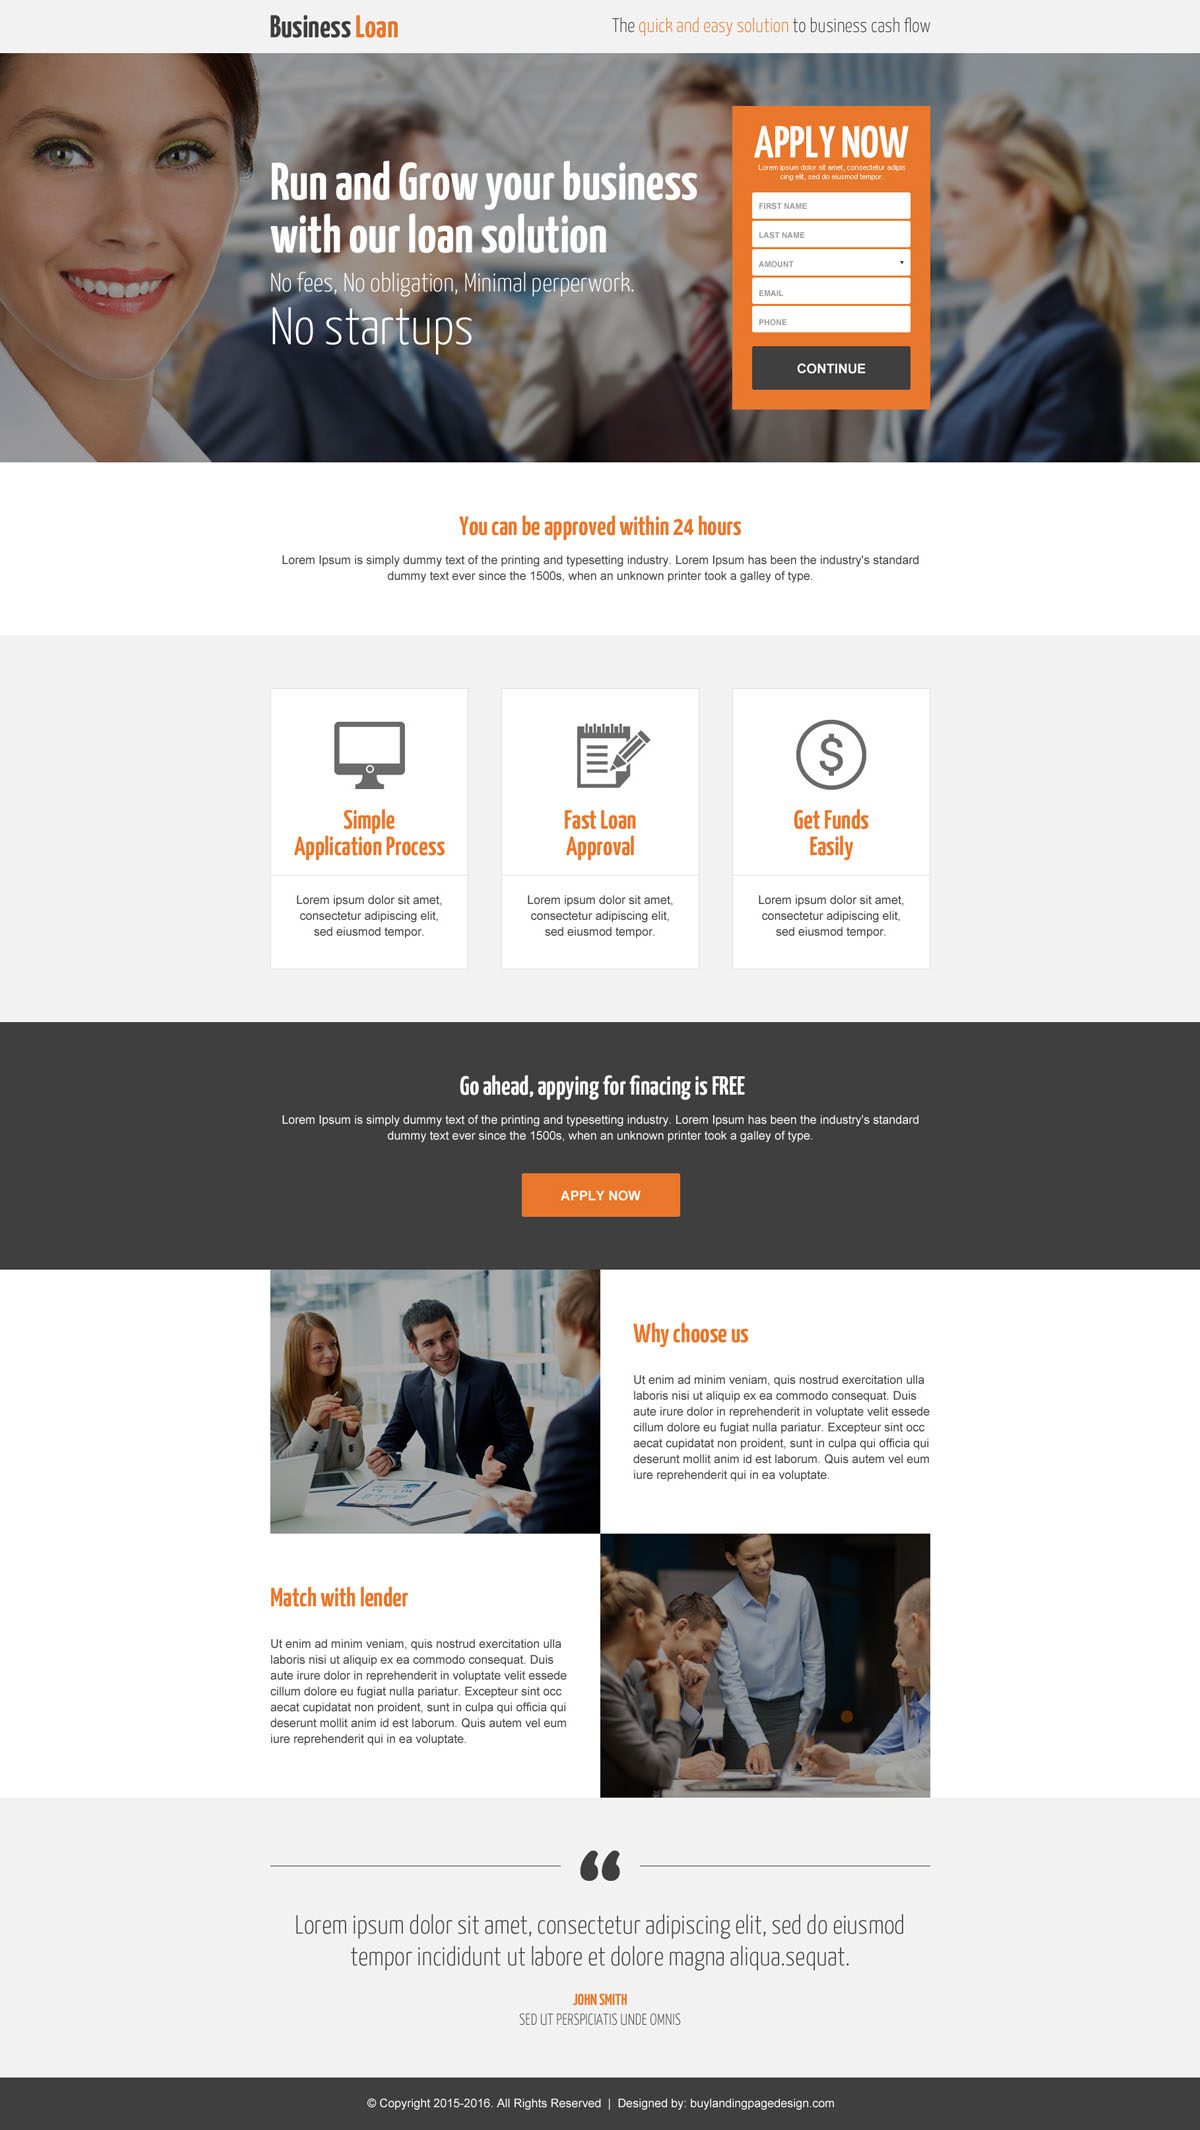 lead-generation-converting-business-loan-landing-page-design-001